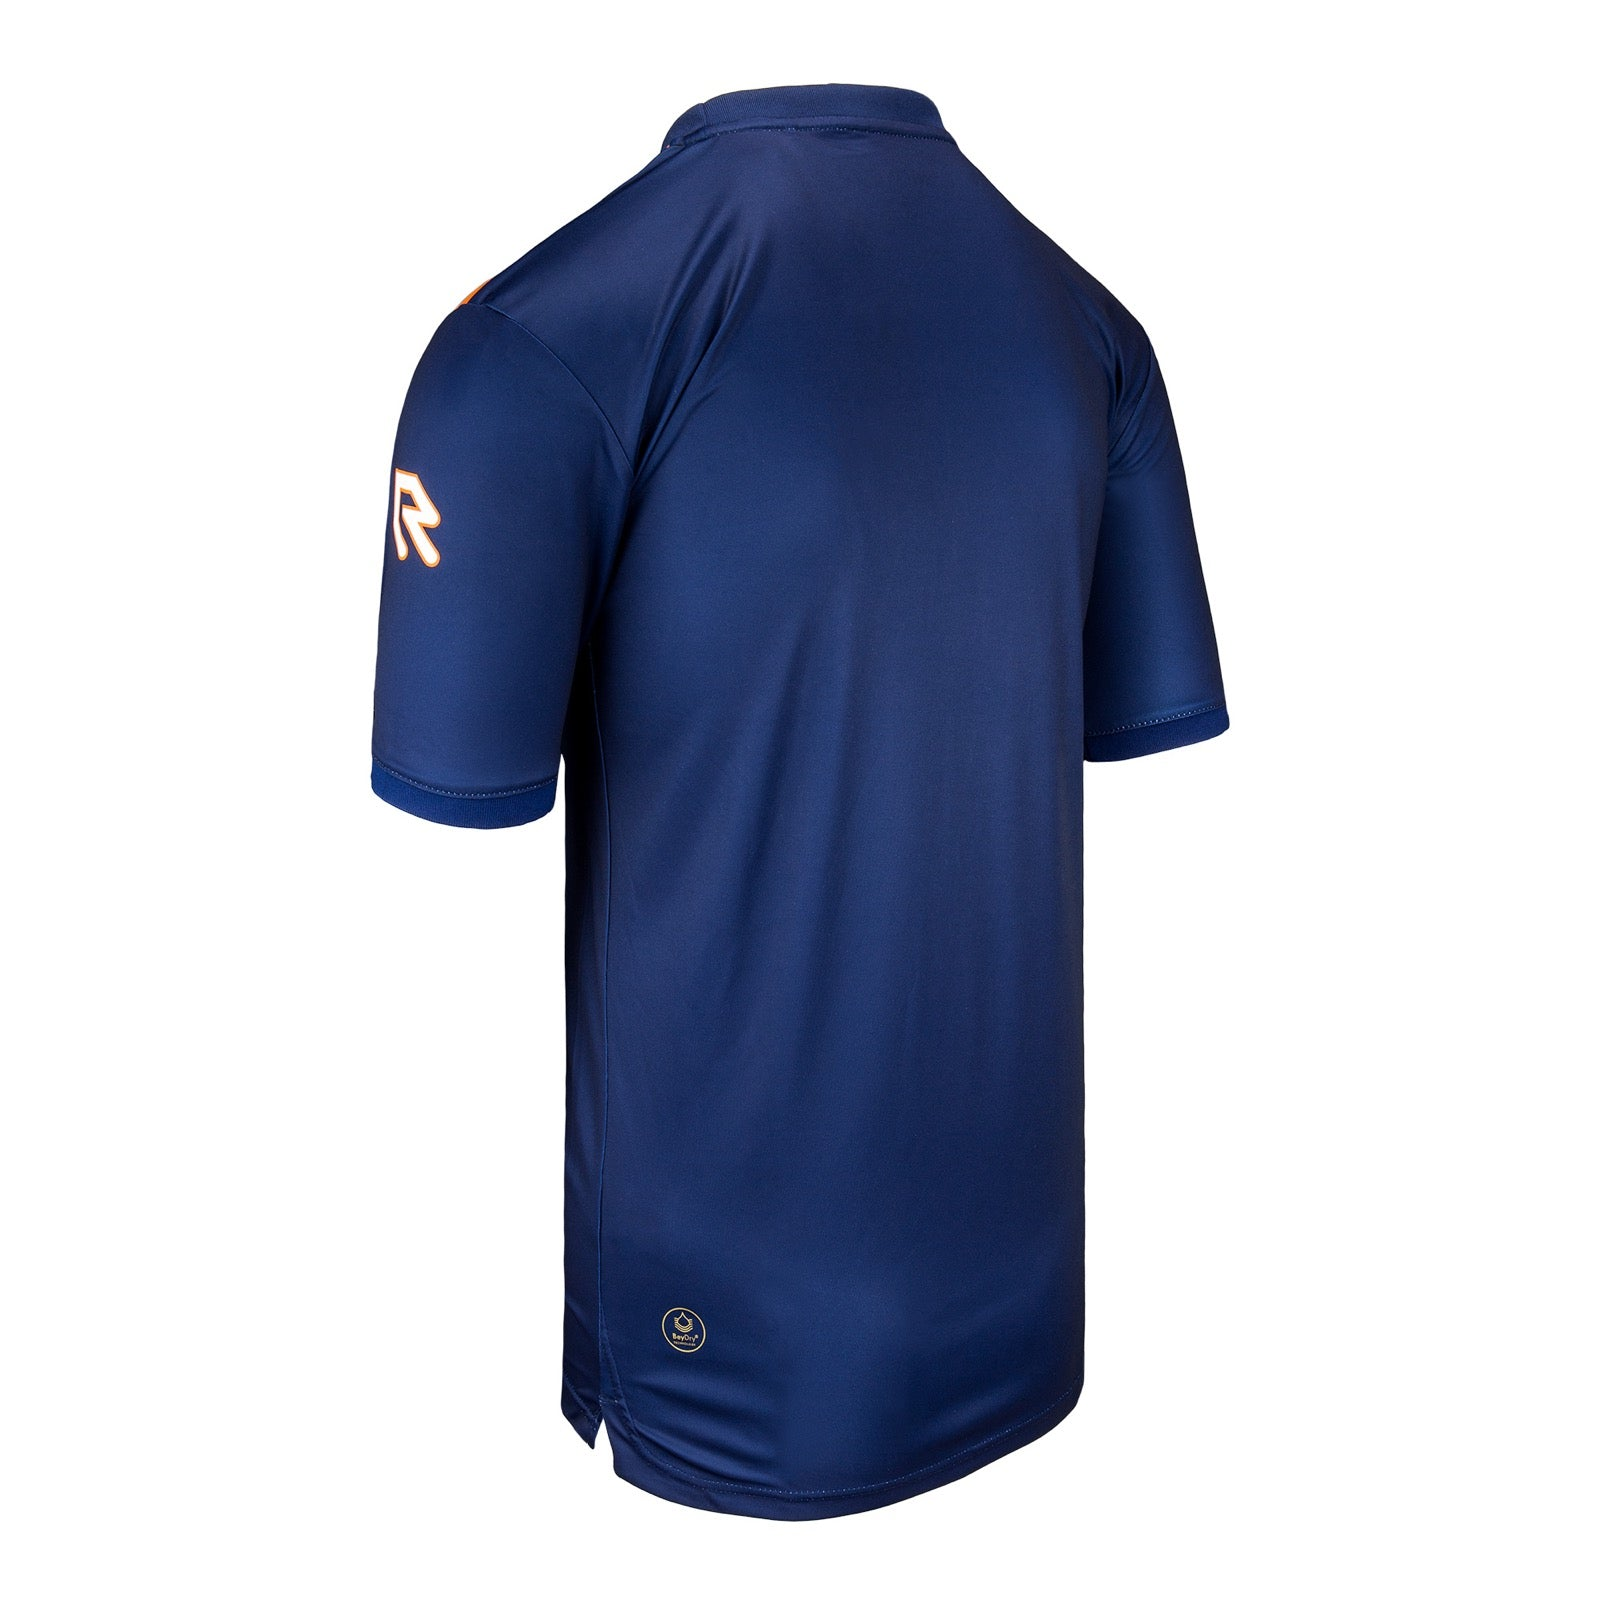 Side Picture - Team Gullit Official Jersey